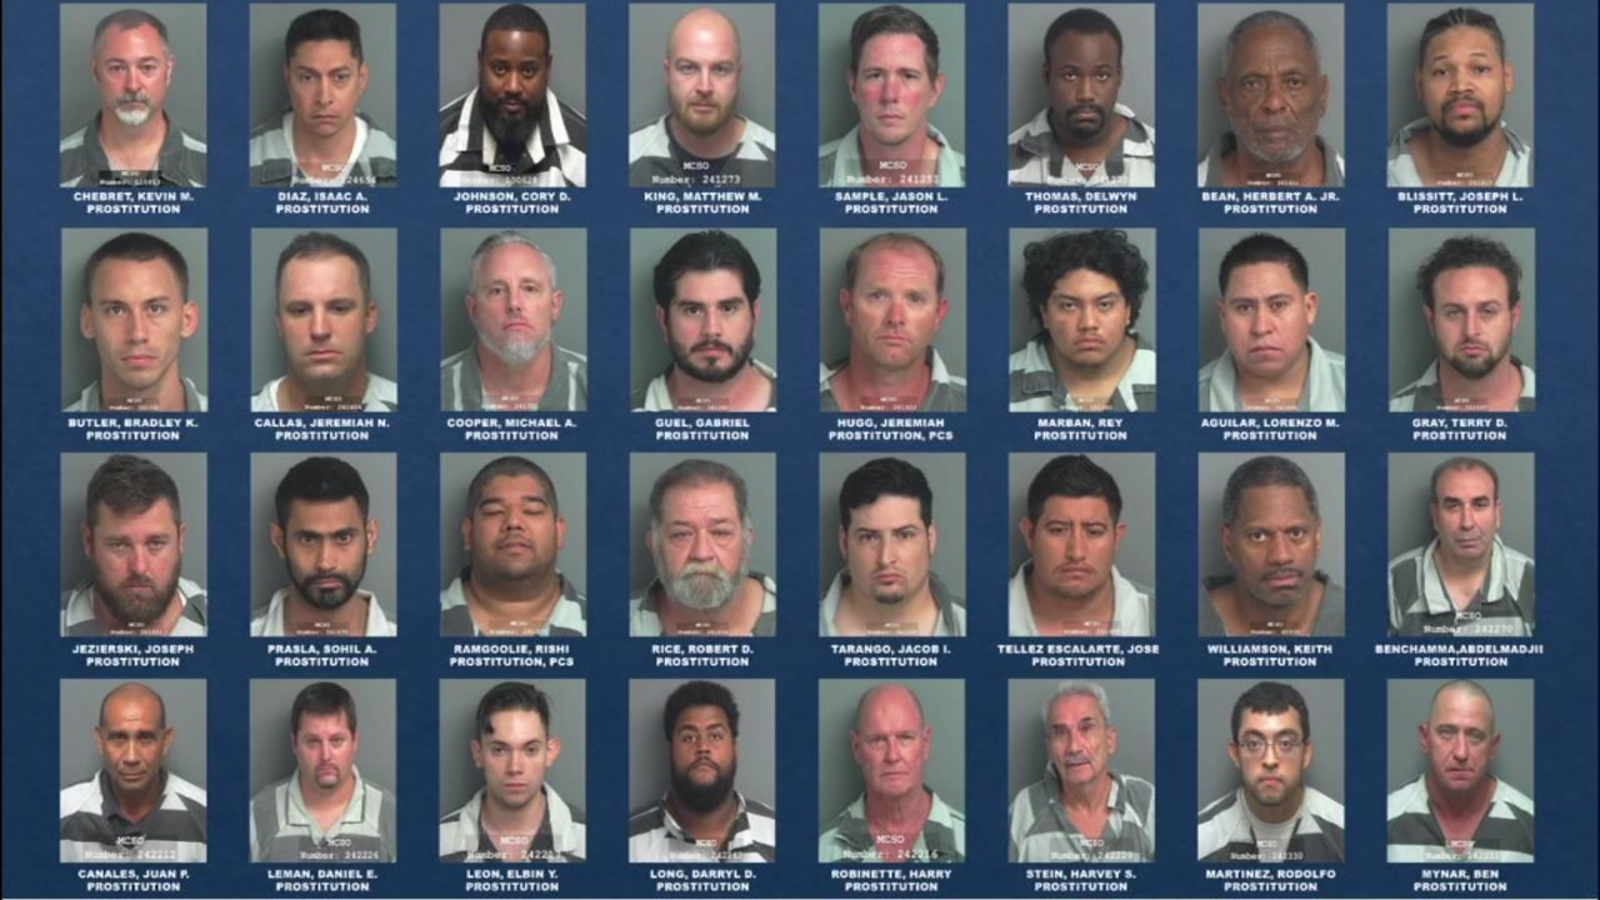 Harris County Sheriff's Office arrests 32 johns in sex trafficking  crackdown